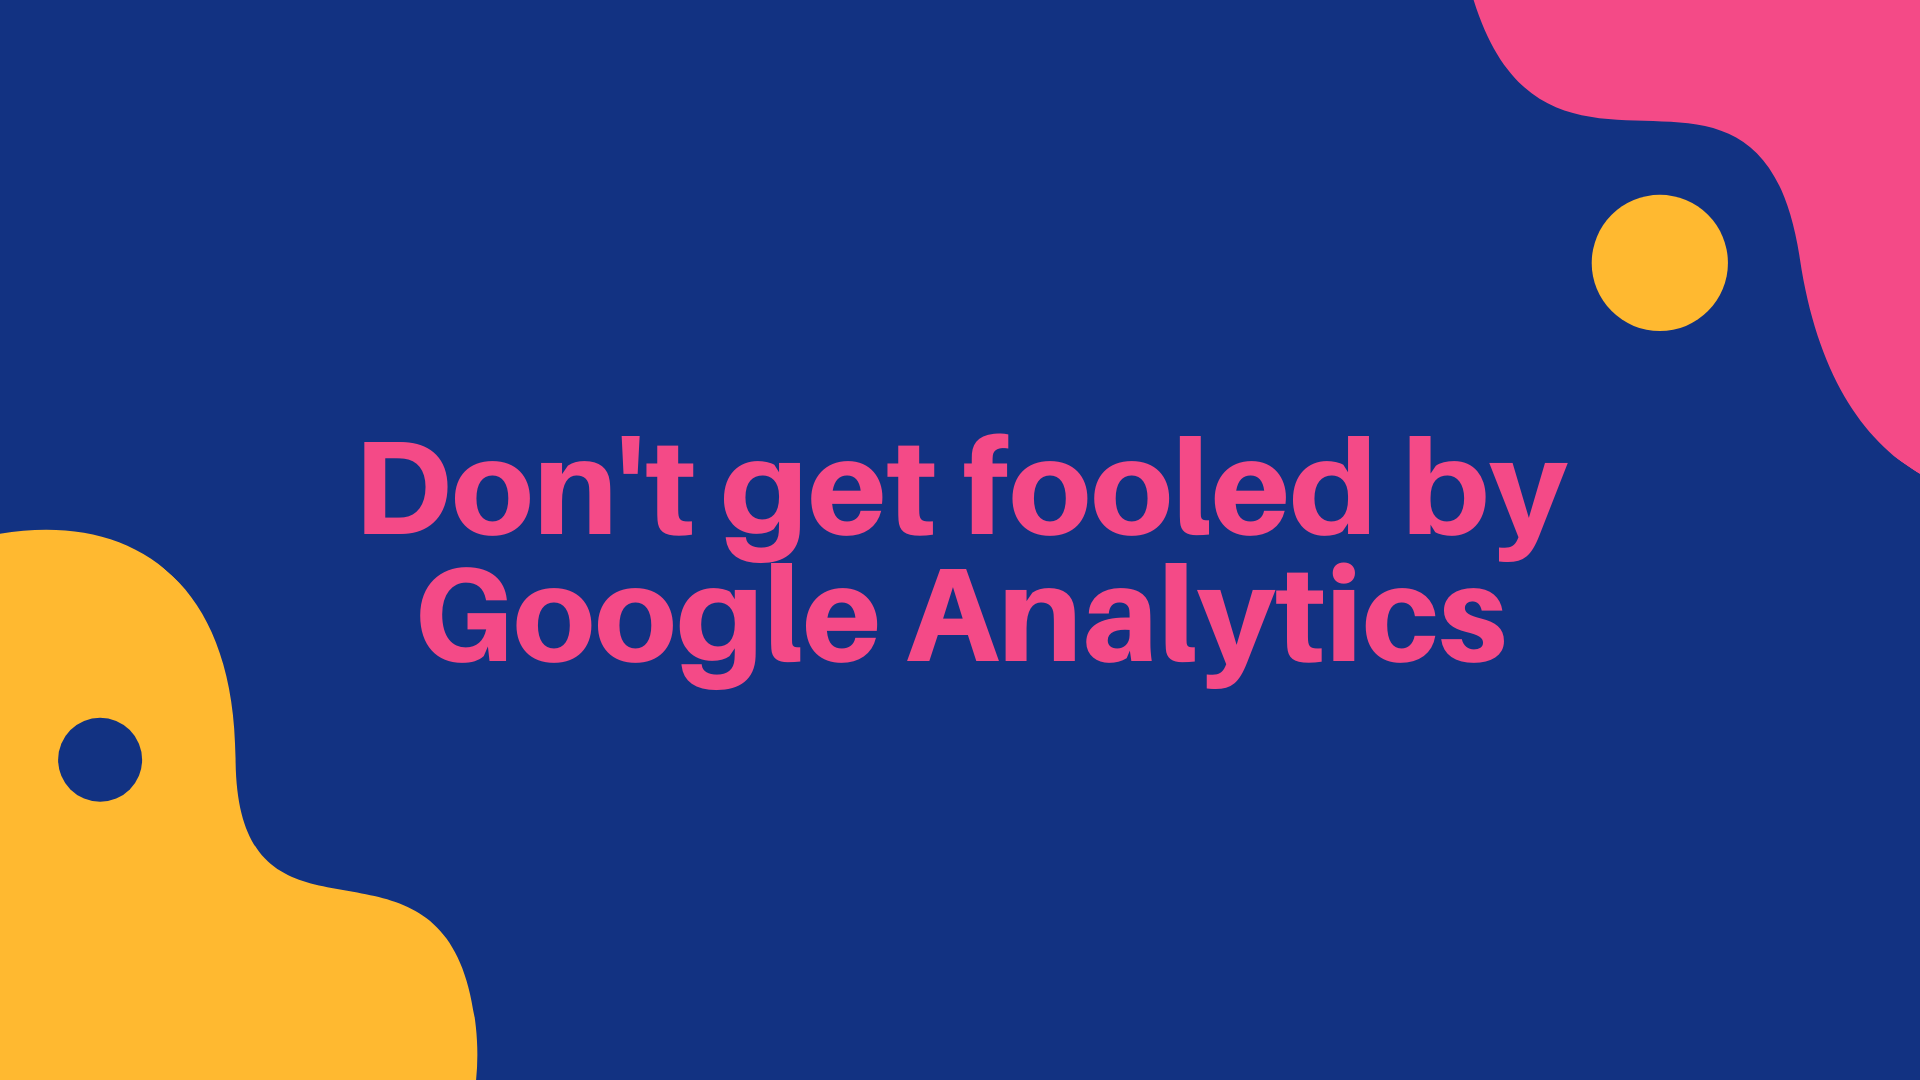 Don't get fooled by Google Analytics